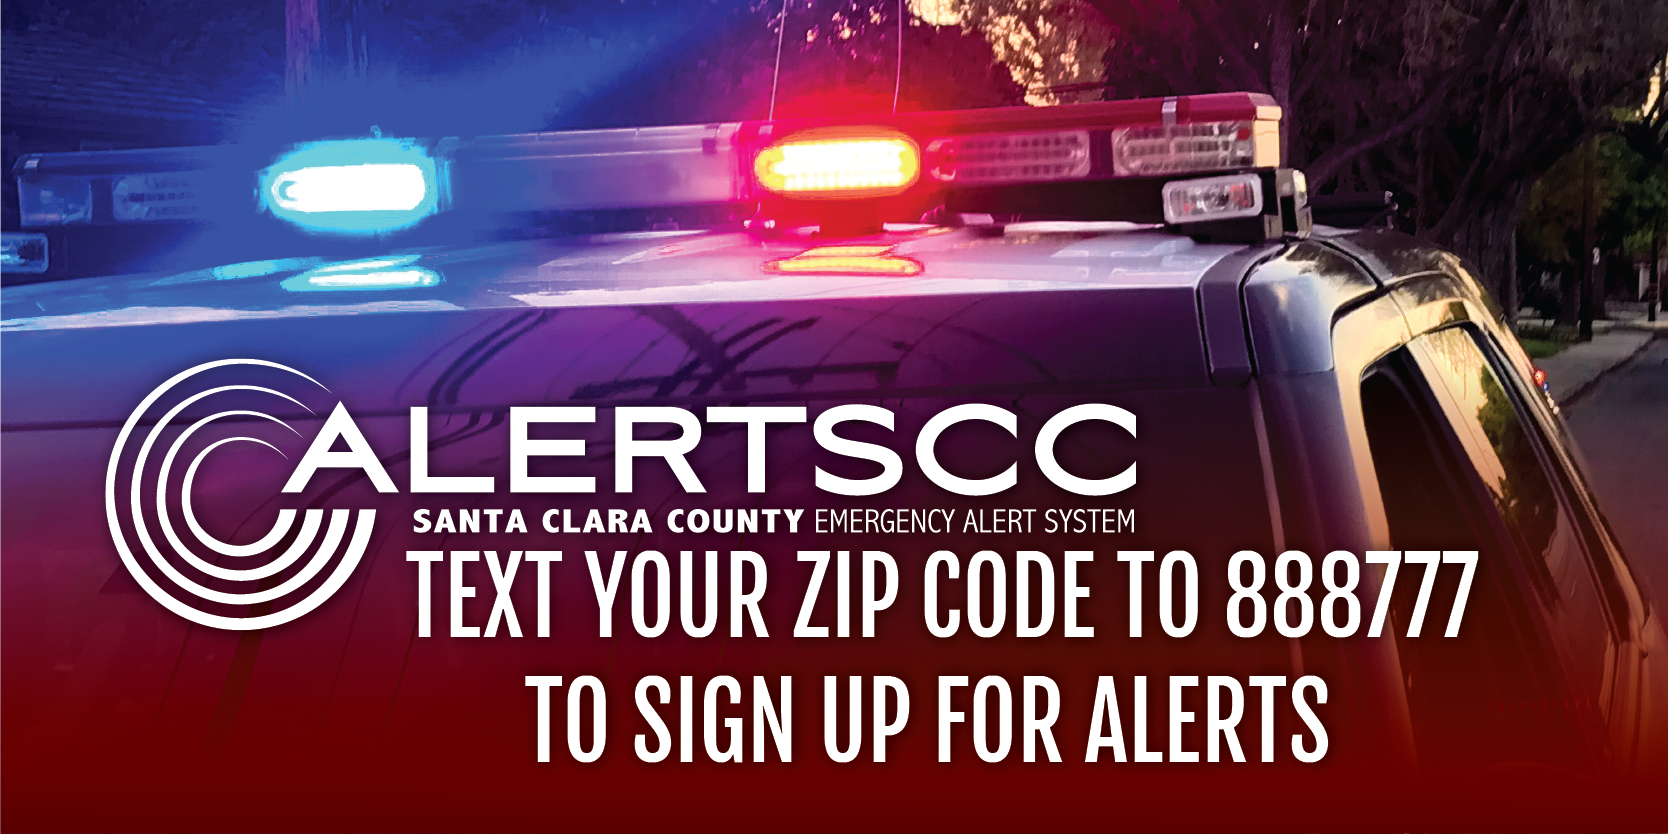 AlertSCC Text your zip-code to 888777 to sign up for alerts. Opens in new window